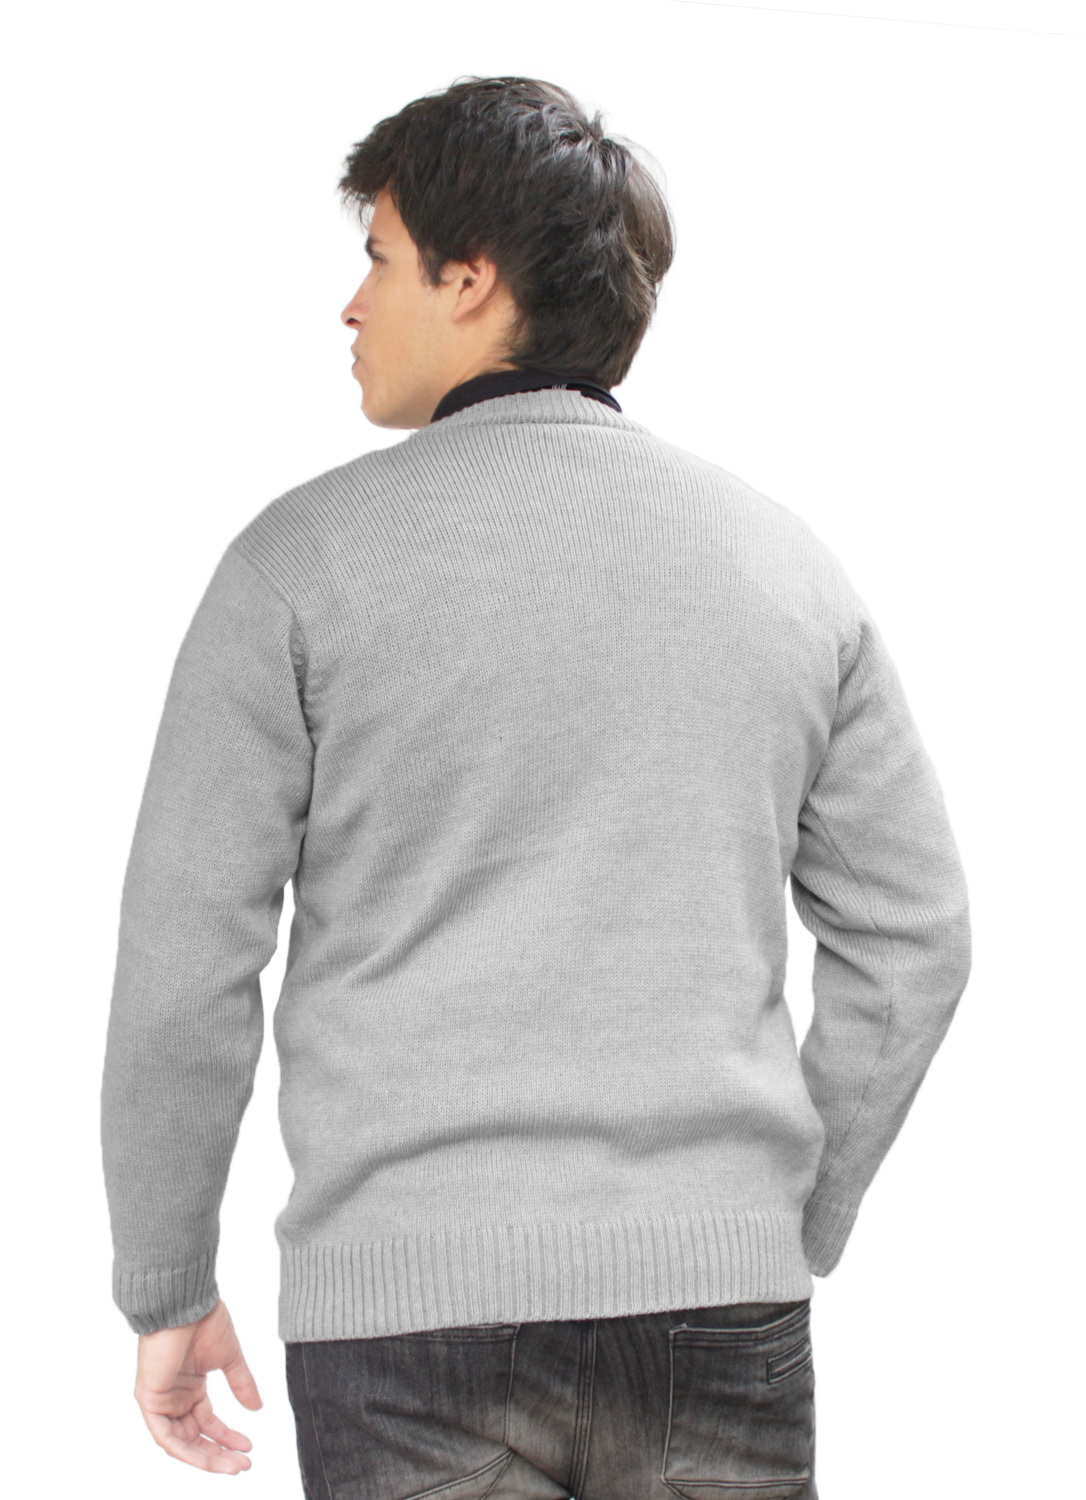 Mens Alpaca Wool Knitted Crew Neck Solid Warm Sweater